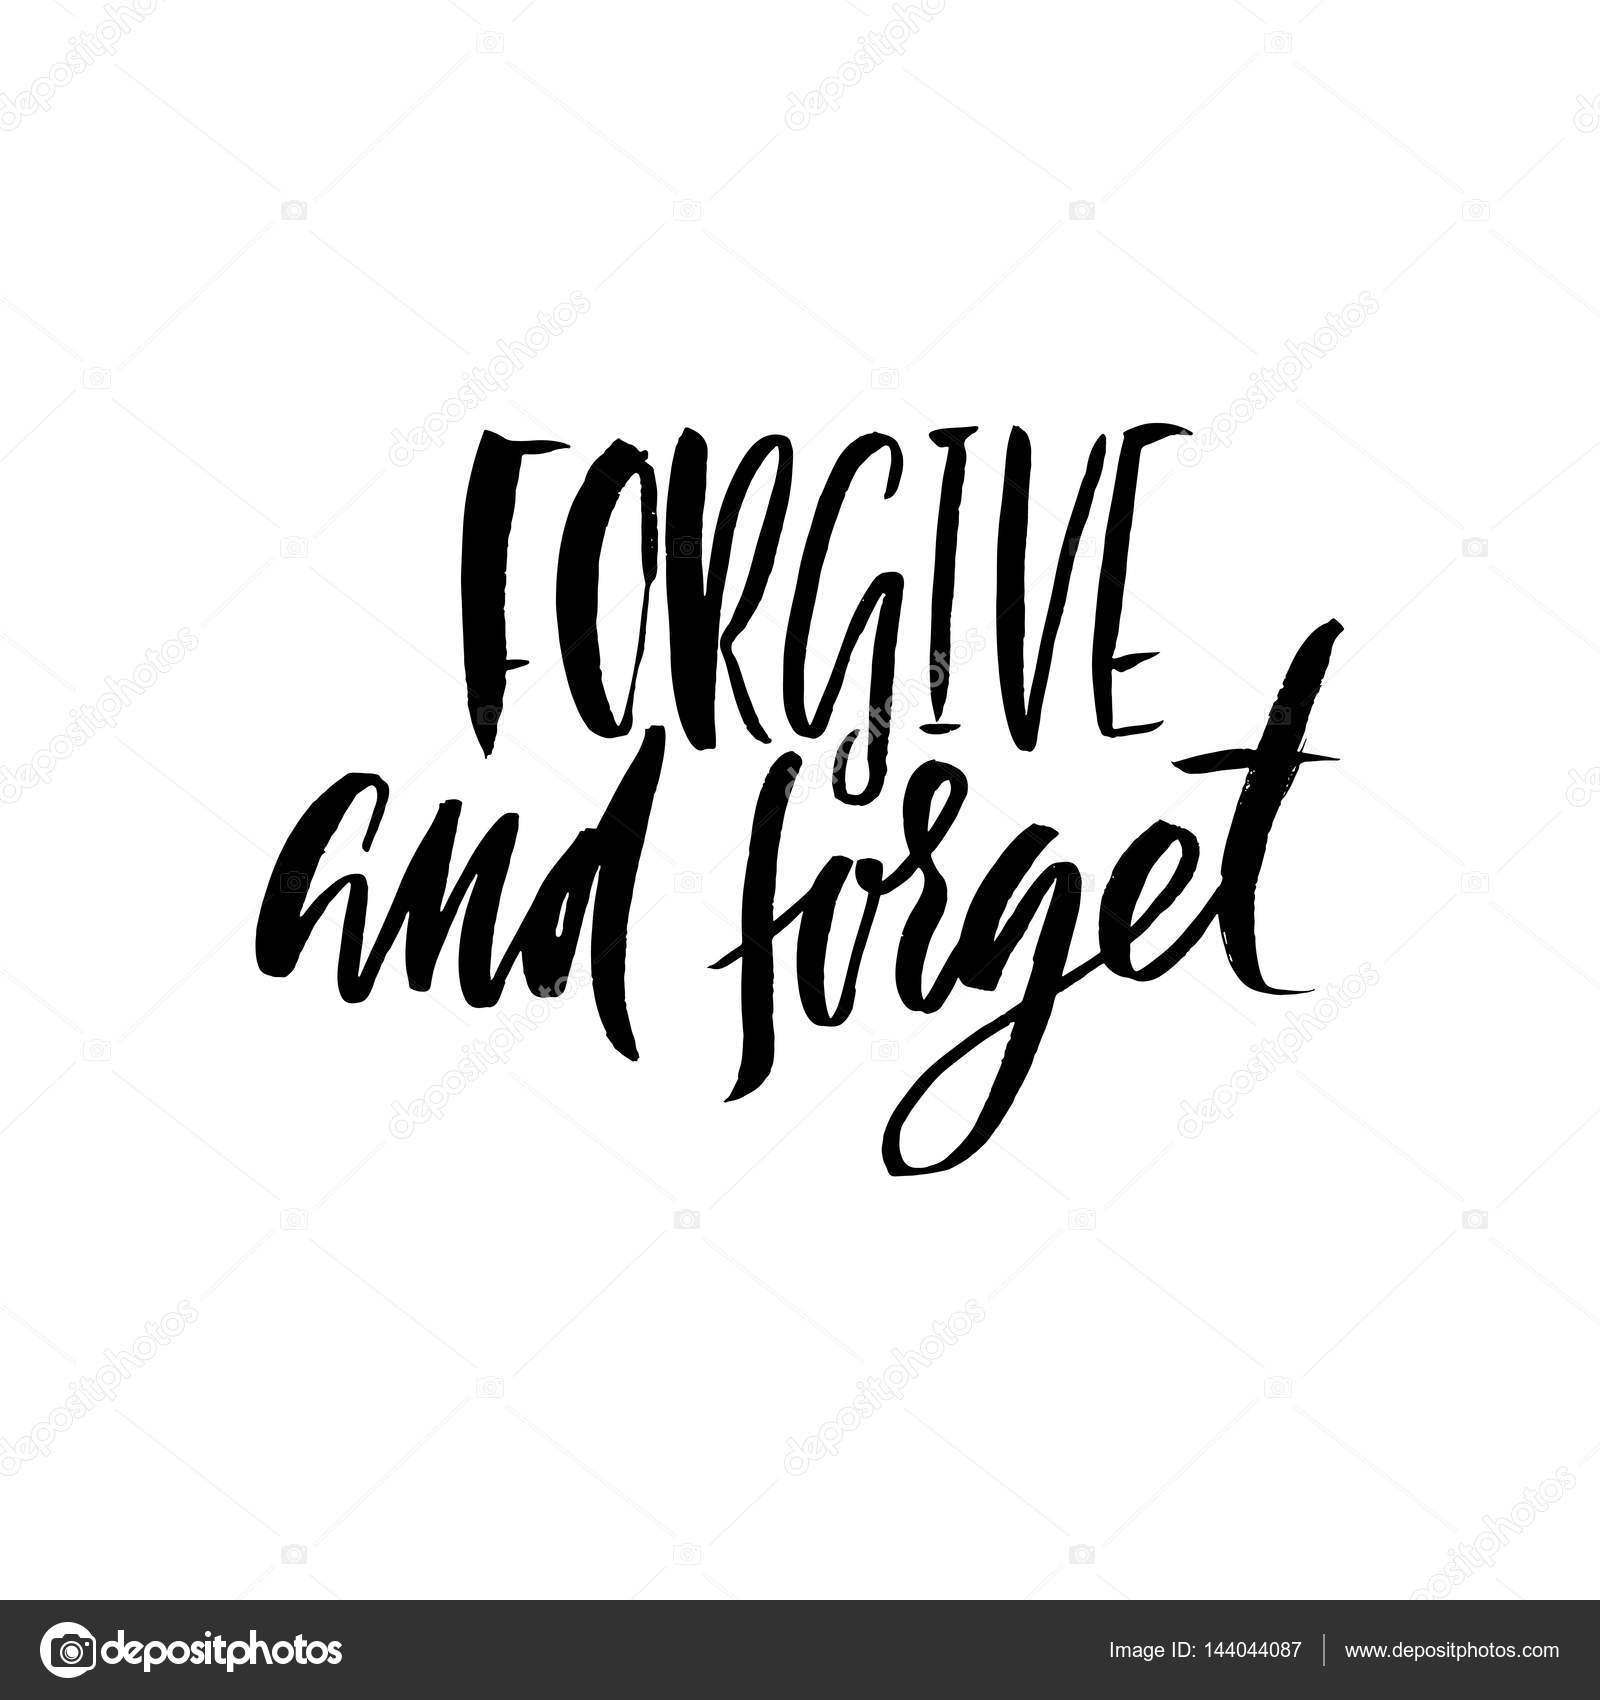 Forgive and forget. Hand drawn lettering proverb. Vector